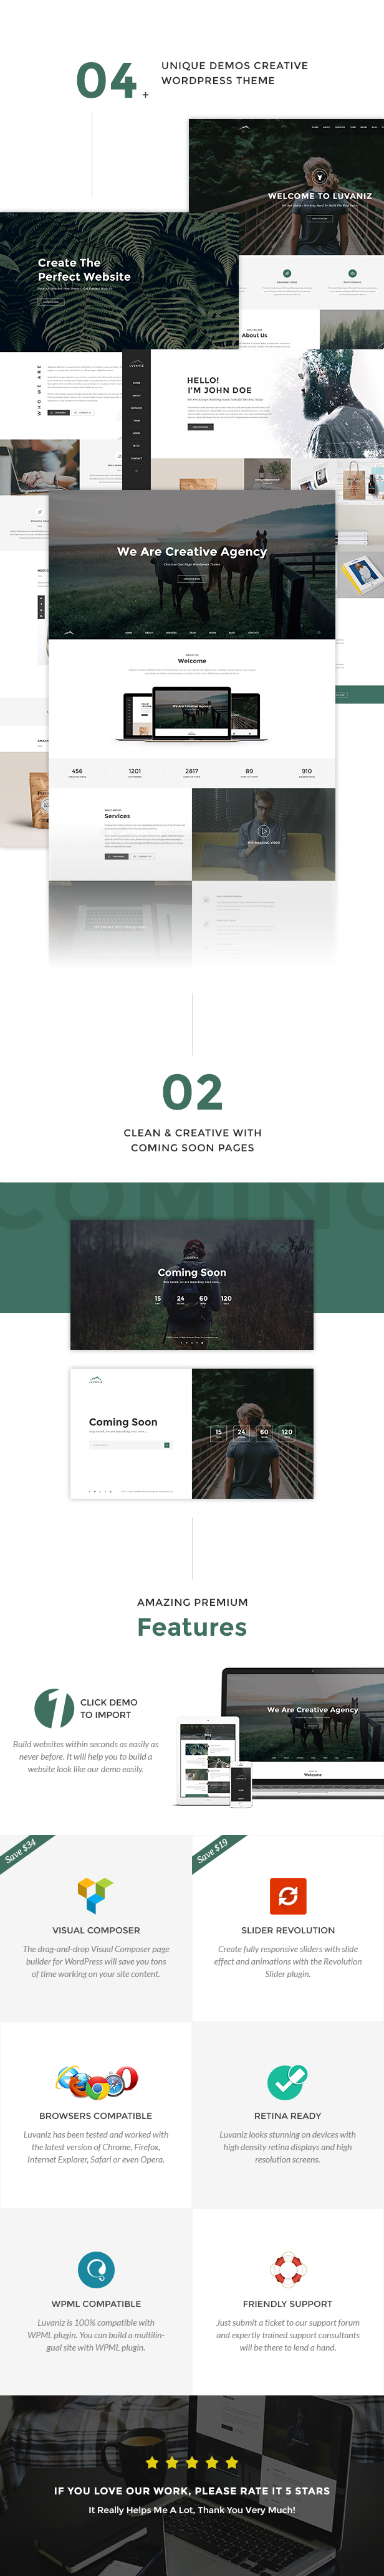 Luvaniz Wordpress Theme